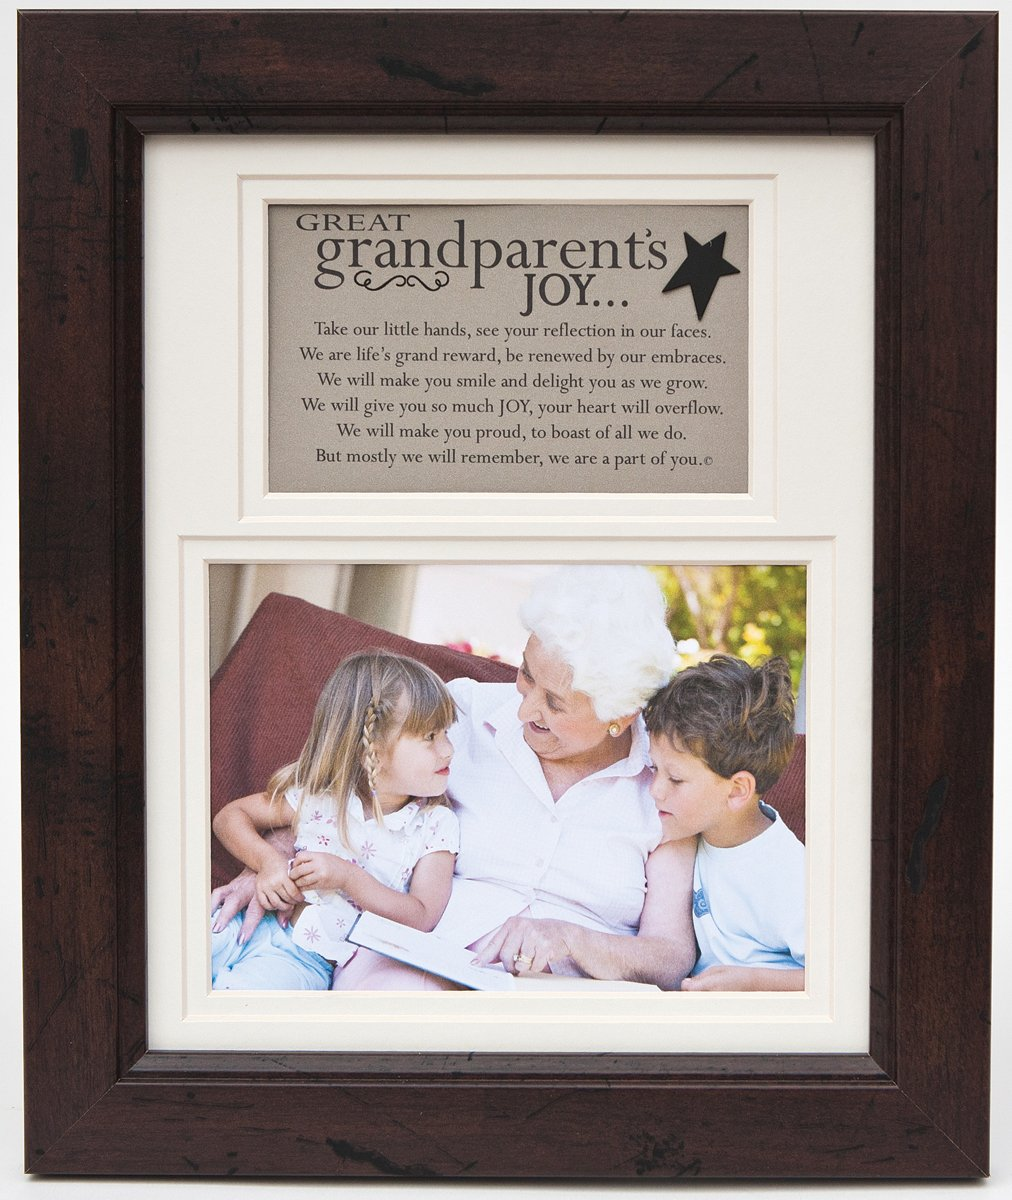 The Grandparent Gift Frame Wall Decor, Great-Grandparent's Joy Great-Grandparent's Joy The Grandparent Gift Co. 1135WL